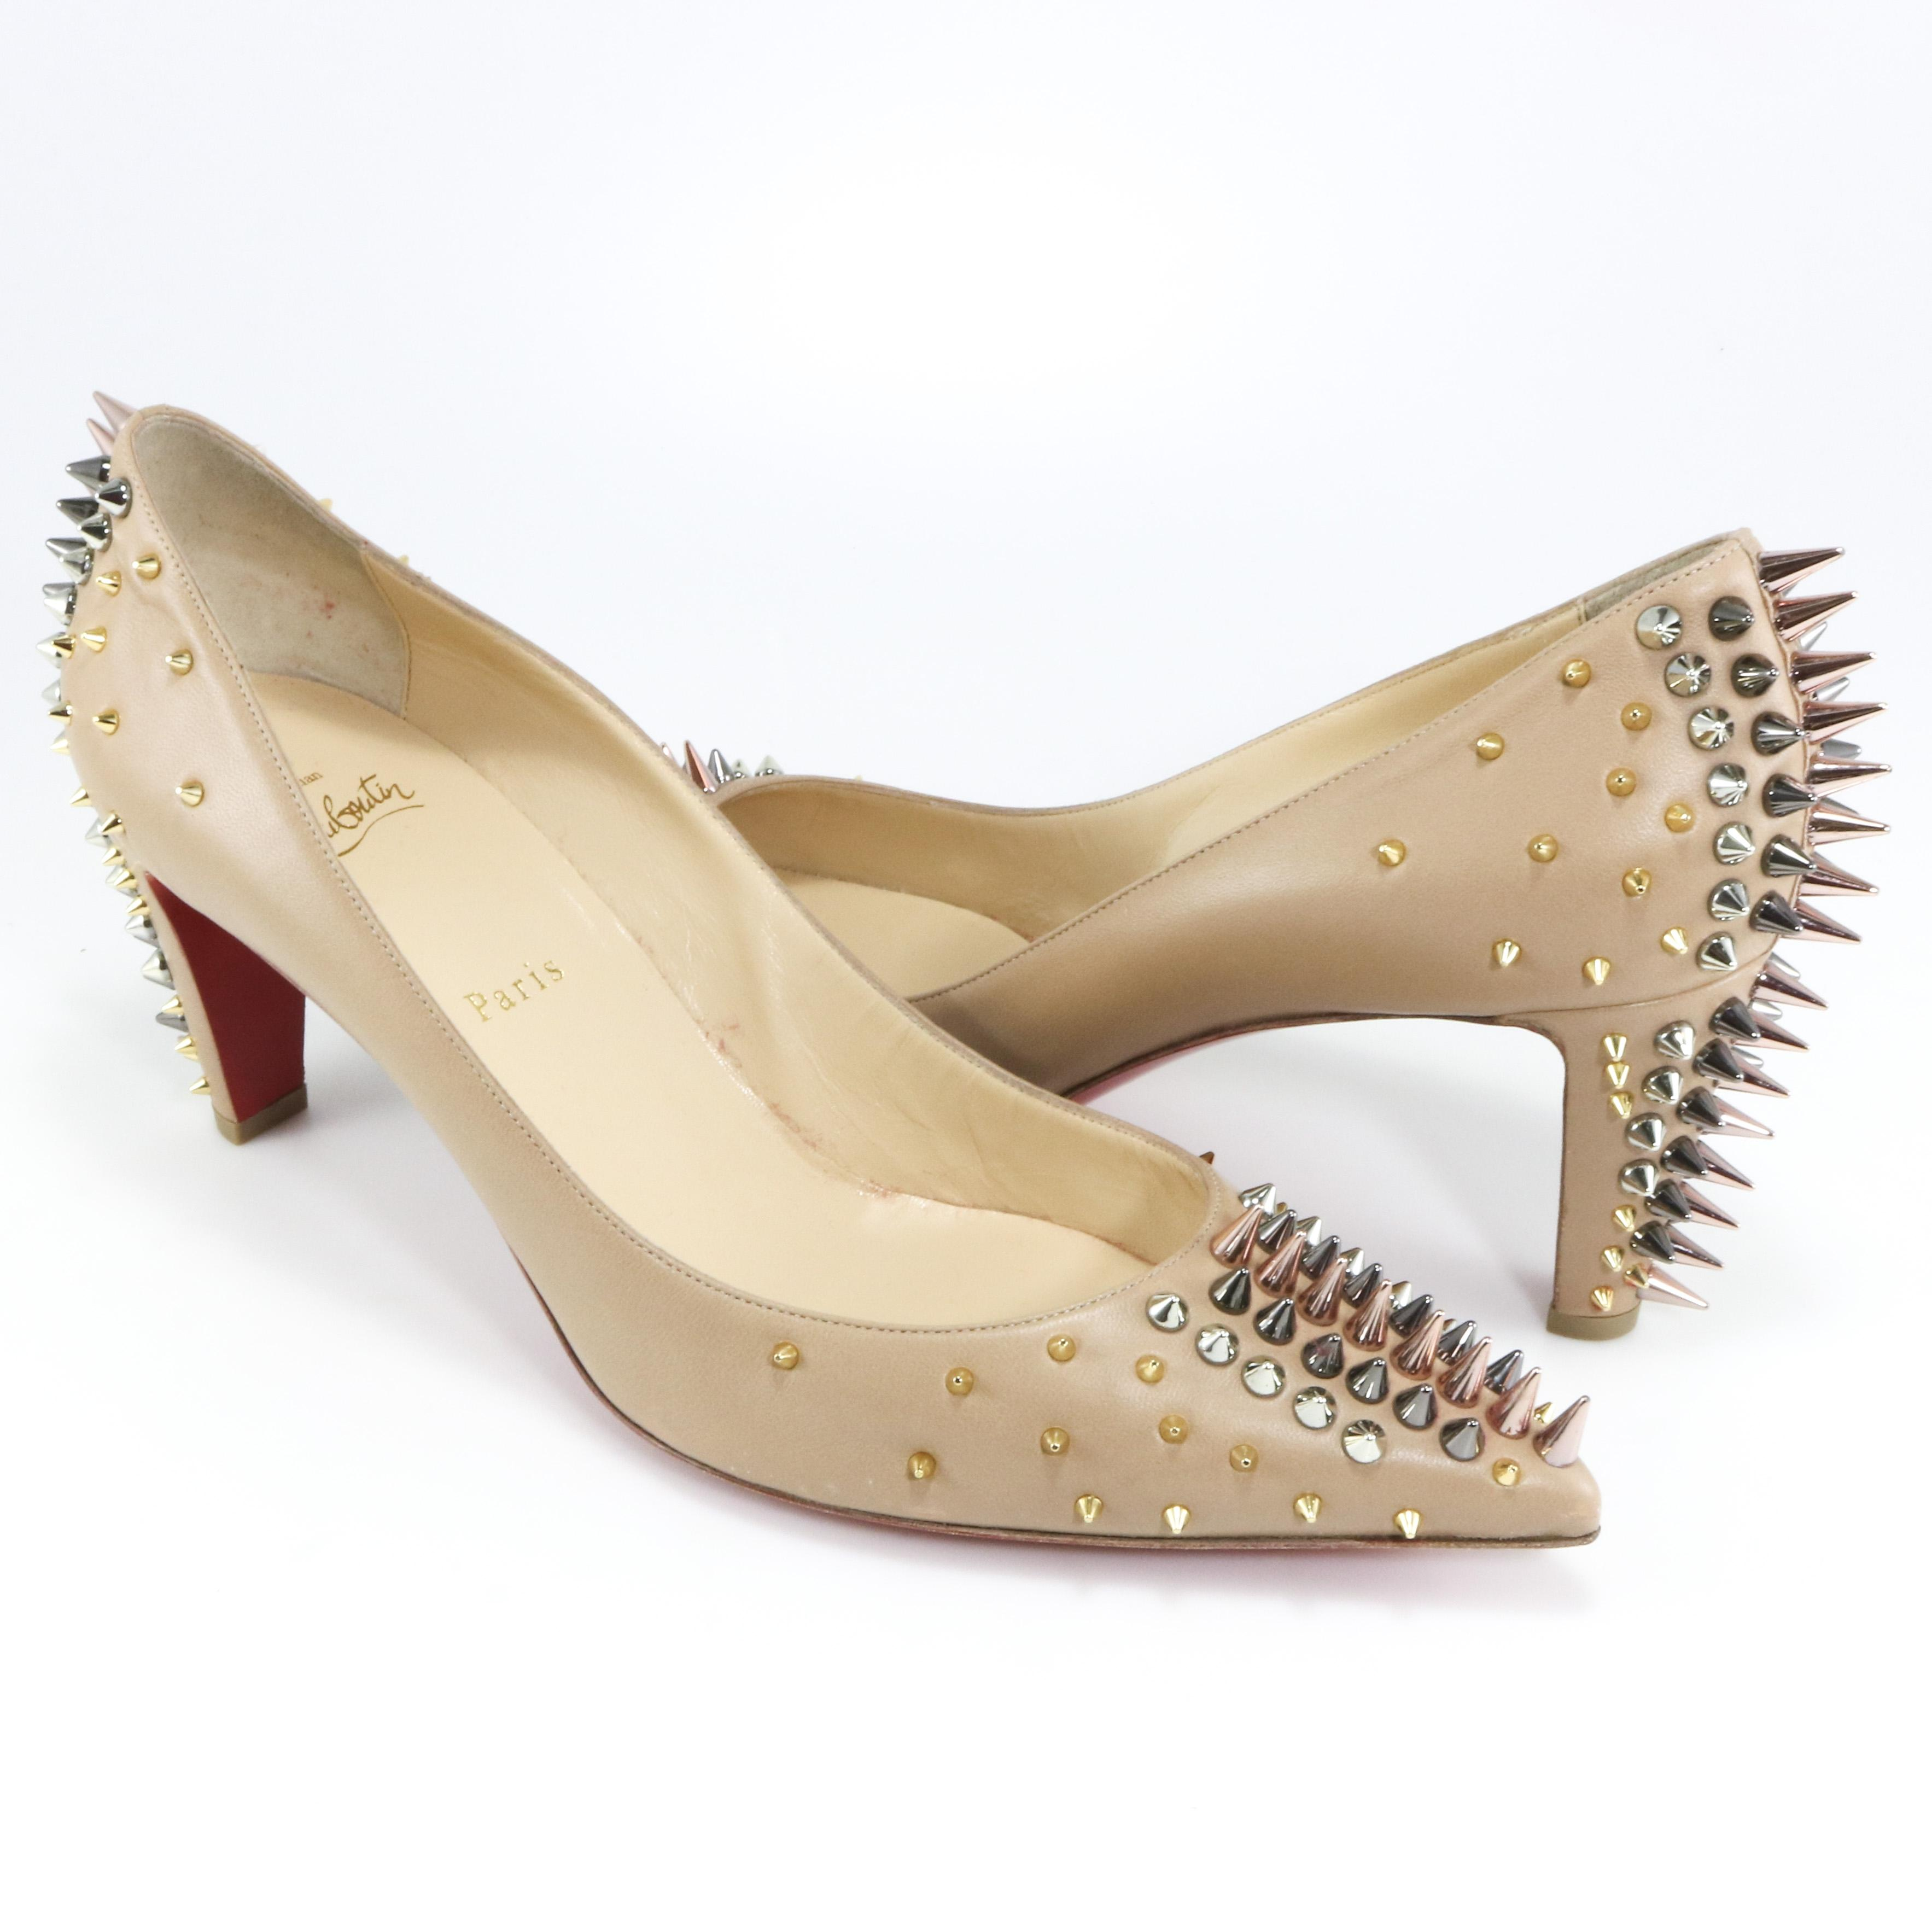 651287d1595f ... promo code for christian louboutin goldopump 70mm spike 42 nude pumps  1c2fb 468f7 ...